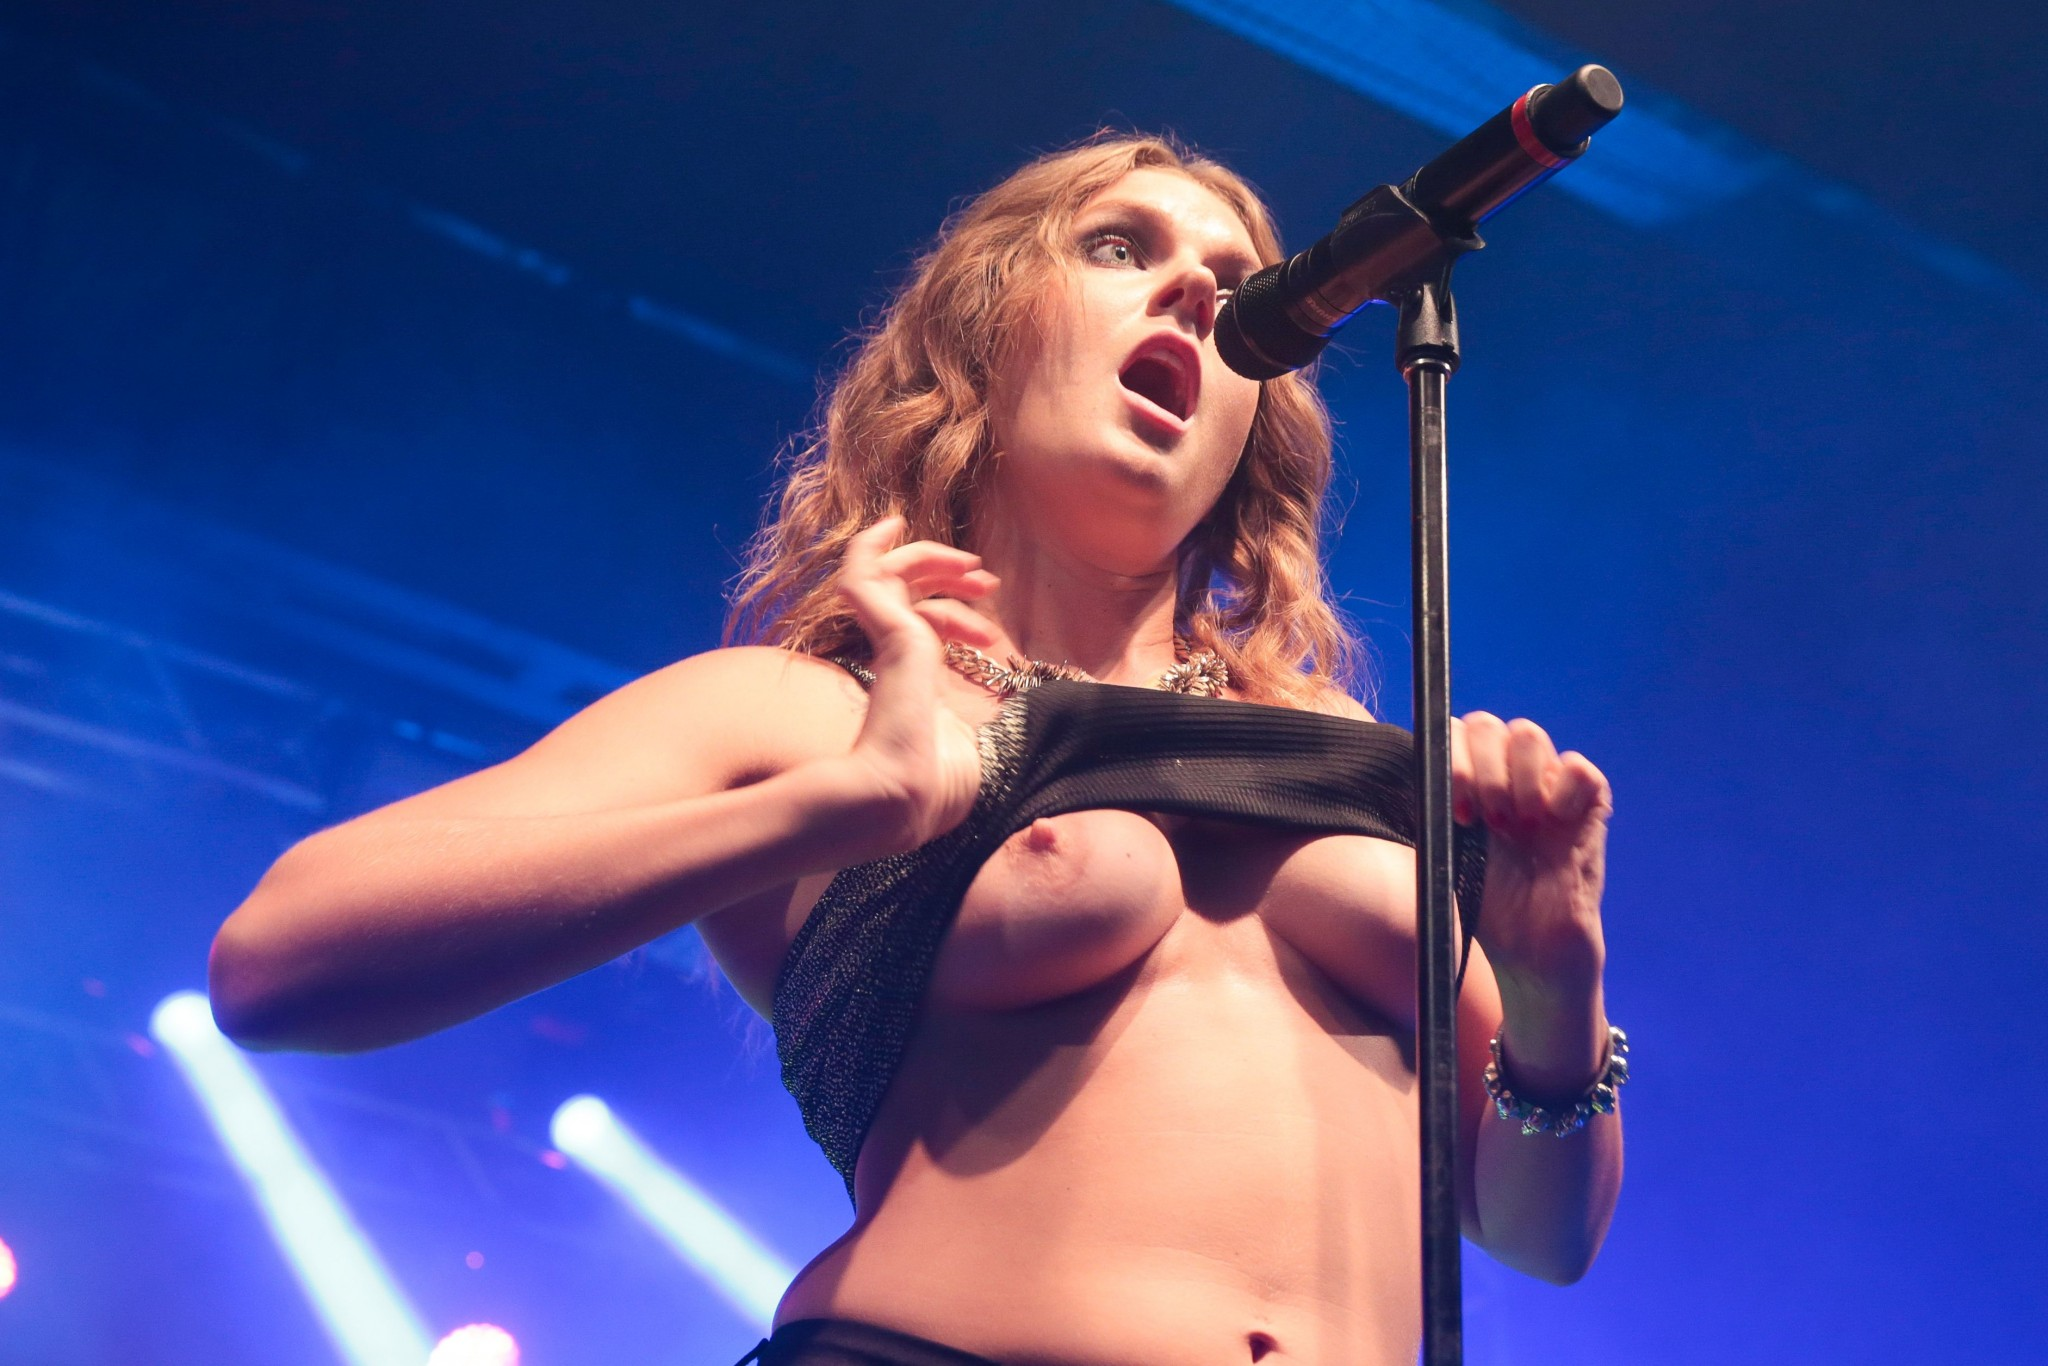 Tove Lo Flashing Her Tits While Performing In Rio De Janeiro ...